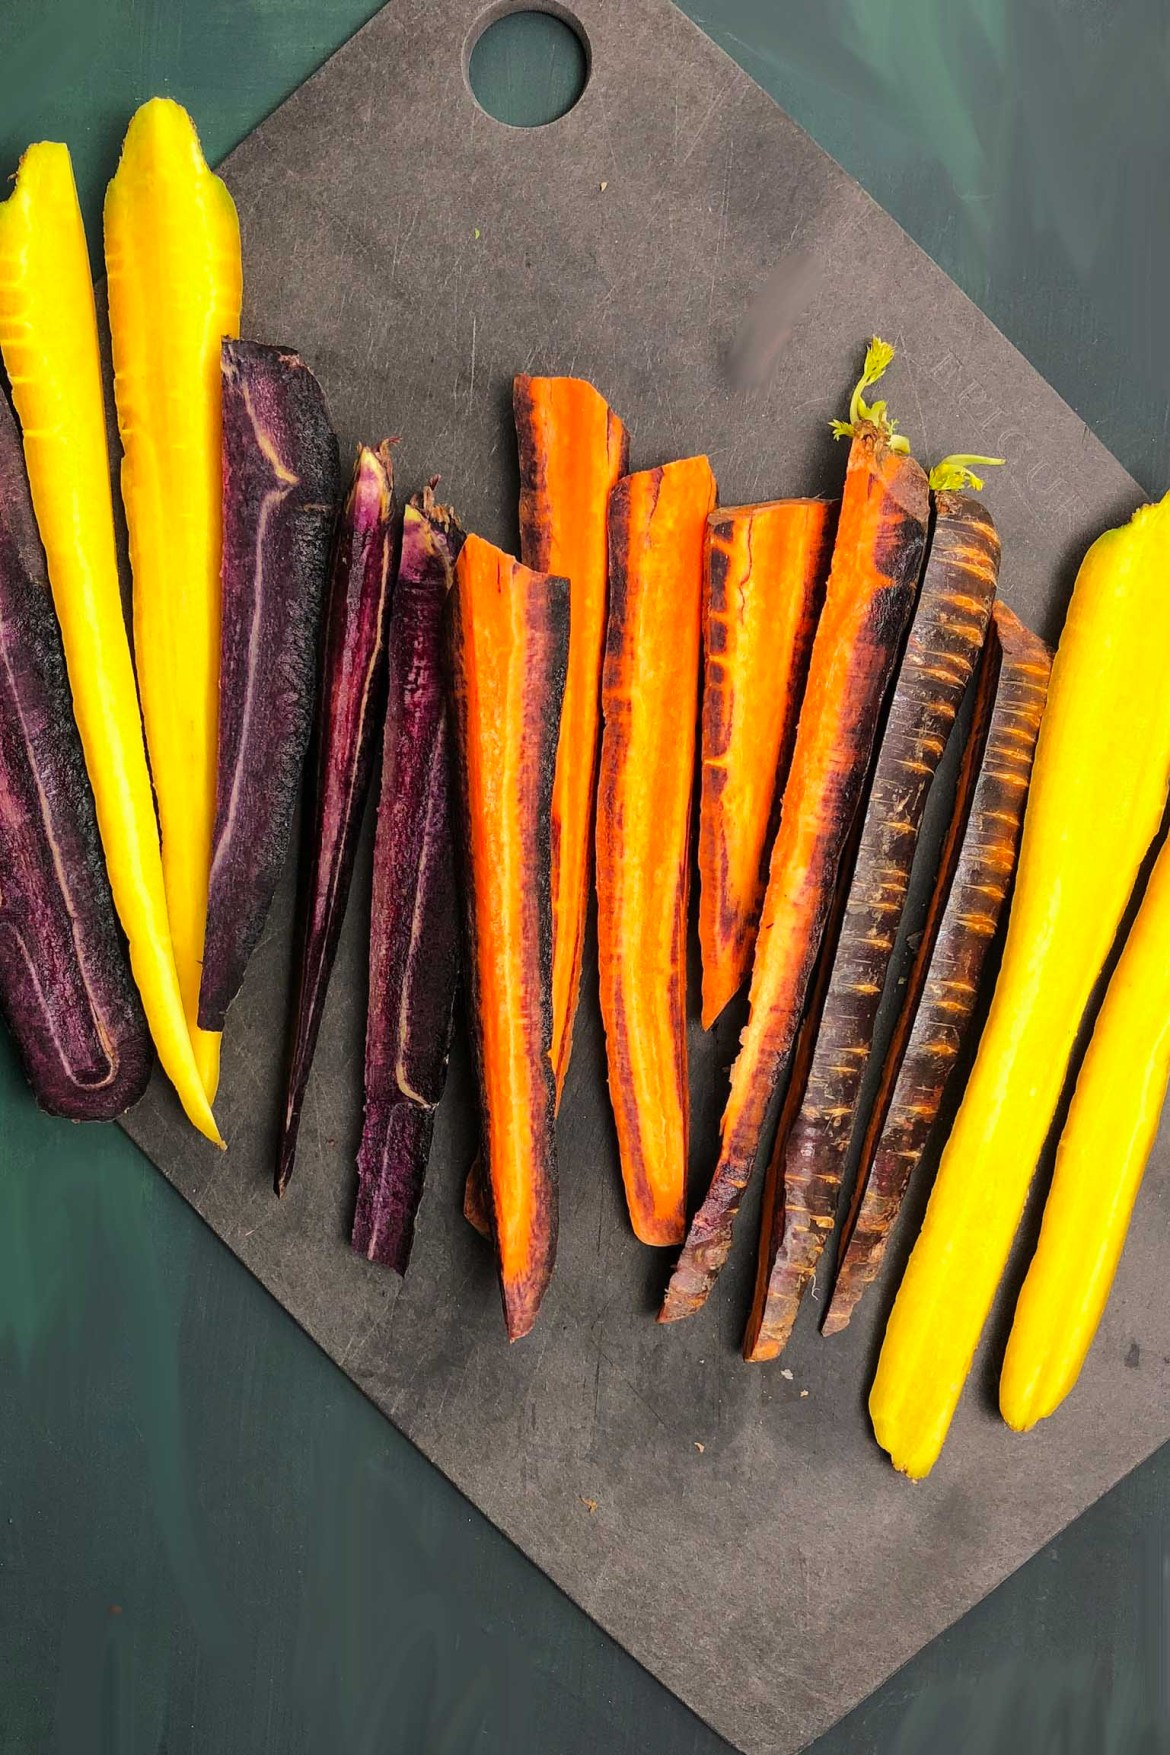 Sliced rainbow carrots on a cutting board. Carrots are yellow, orange, and purple.